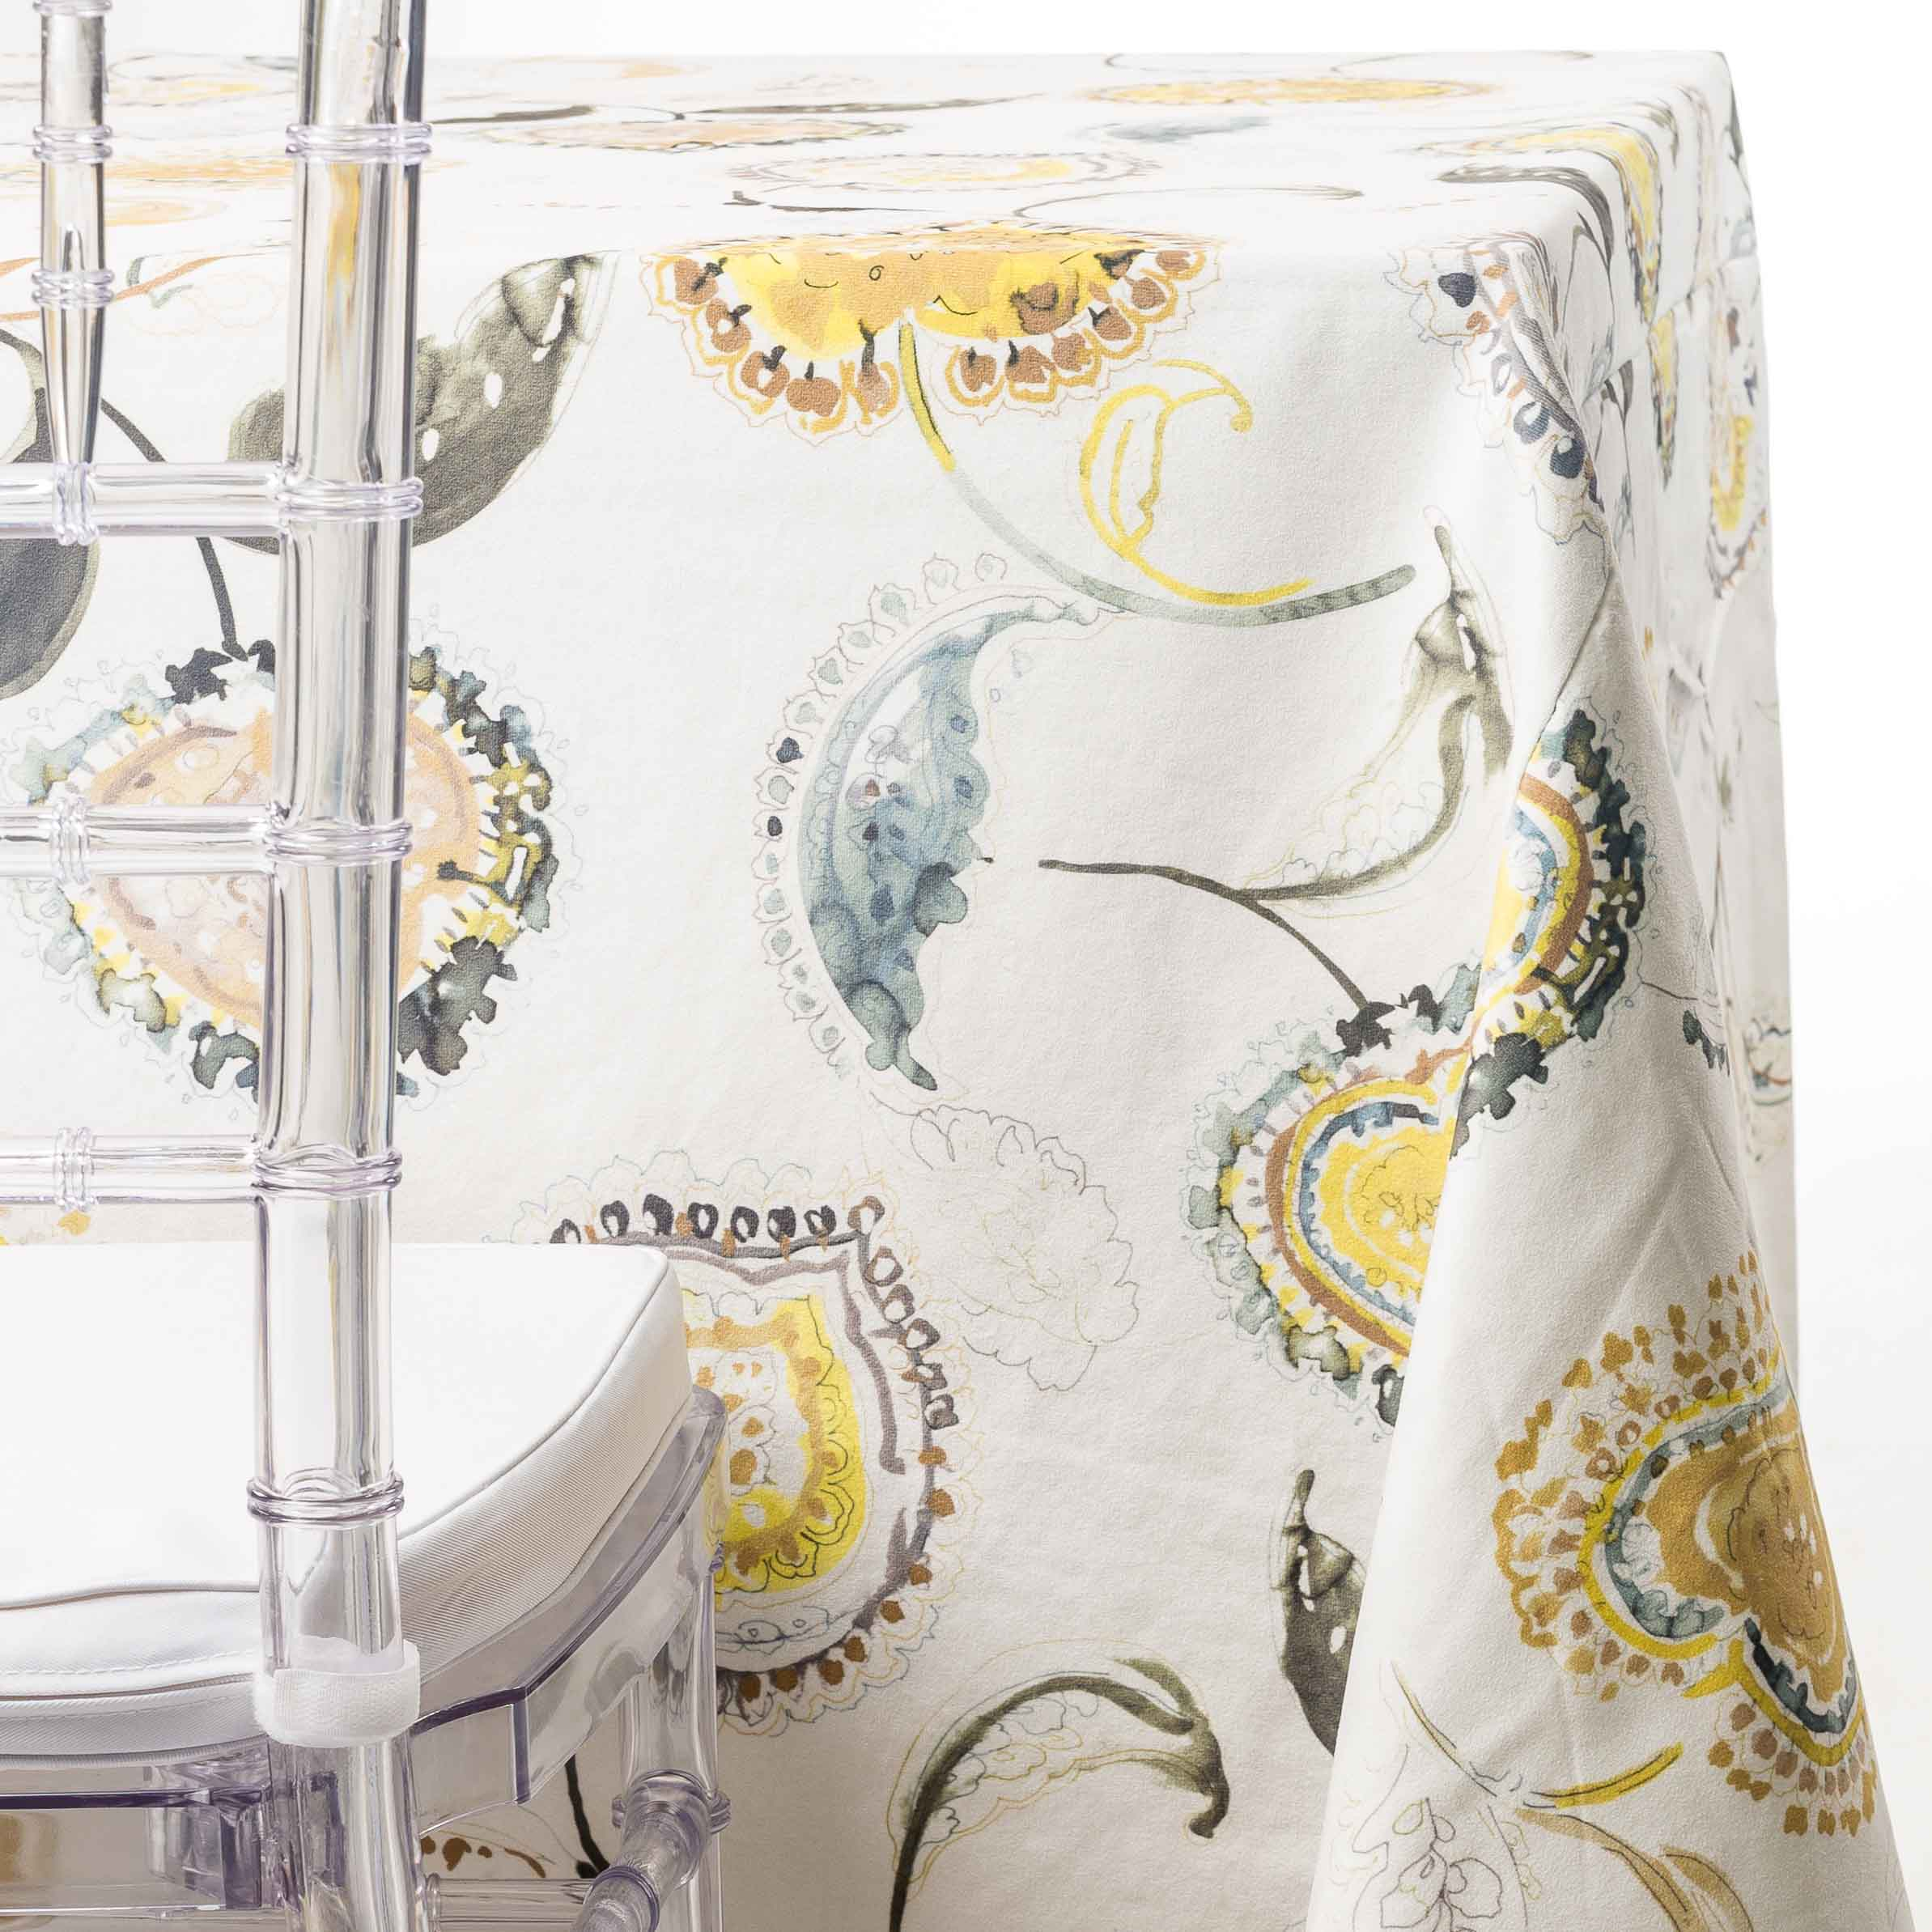 yellow paisley tablecloth rentals in New Jersey. For weddings or parties. Tablecloth and napkin rentals by Chaya Sara Thau